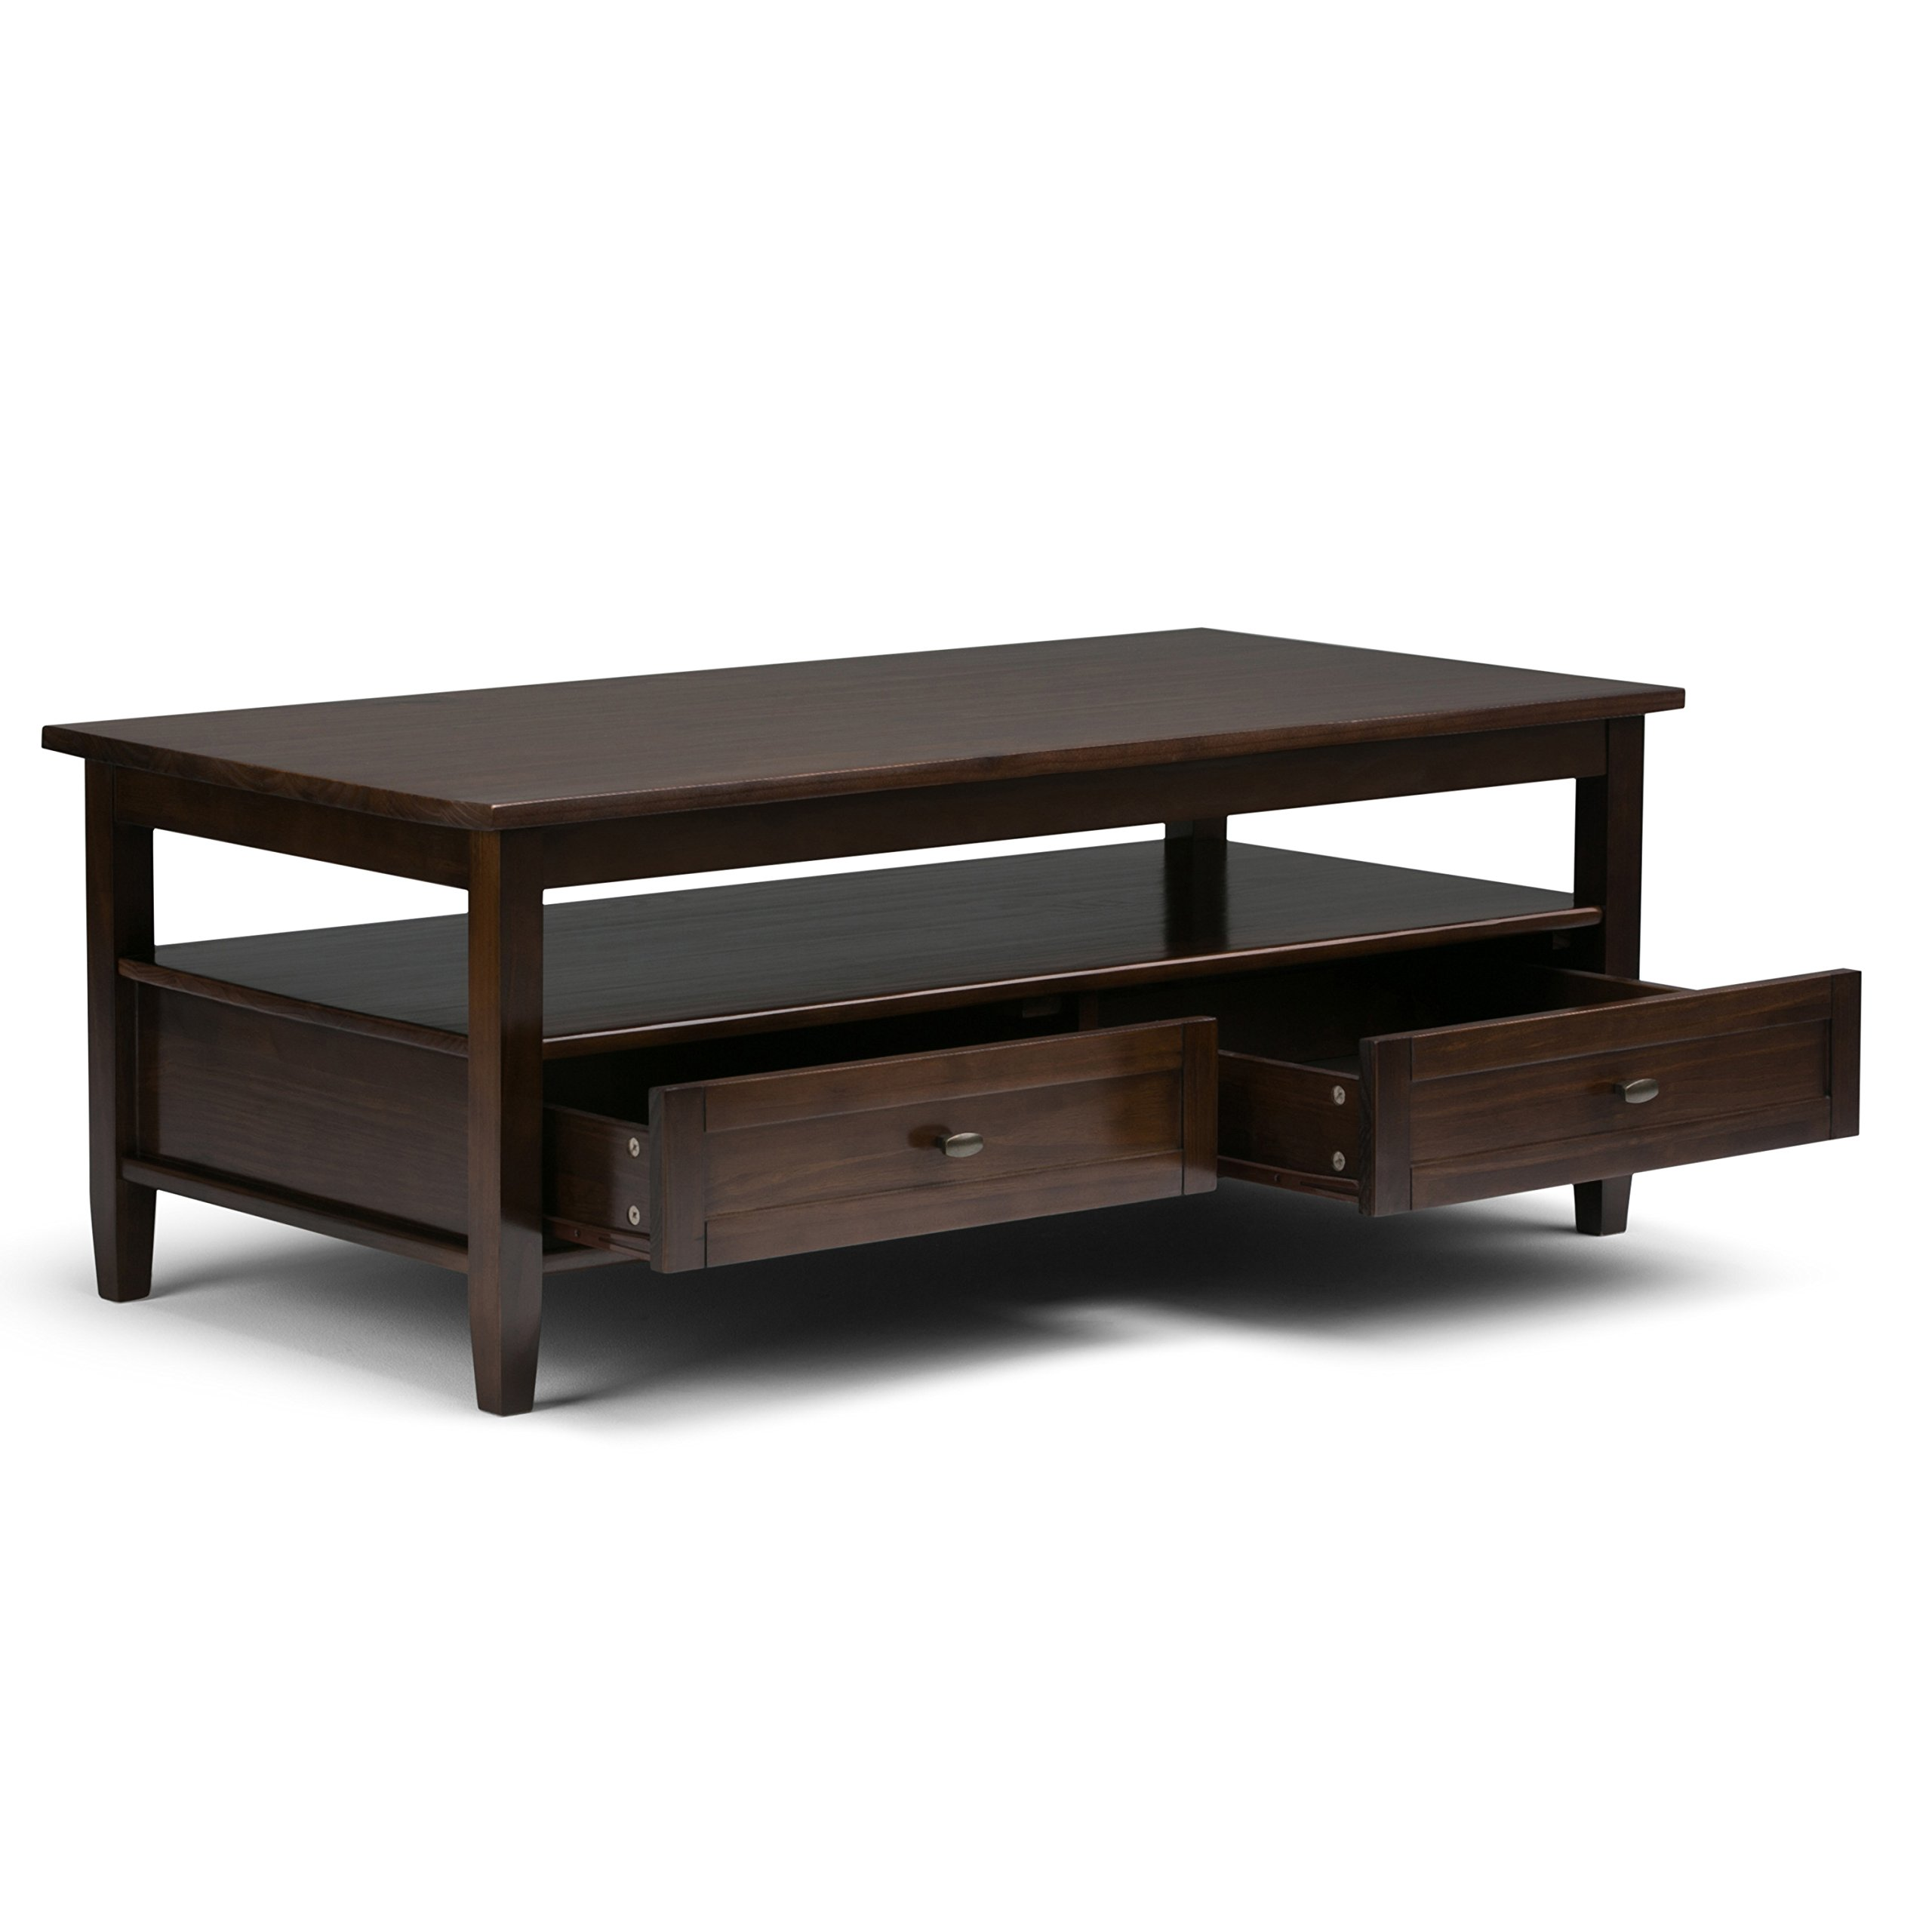 Simpli Home Warm Shaker Solid Wood Coffee Table, Tobacco Brown by Simpli Home (Image #3)